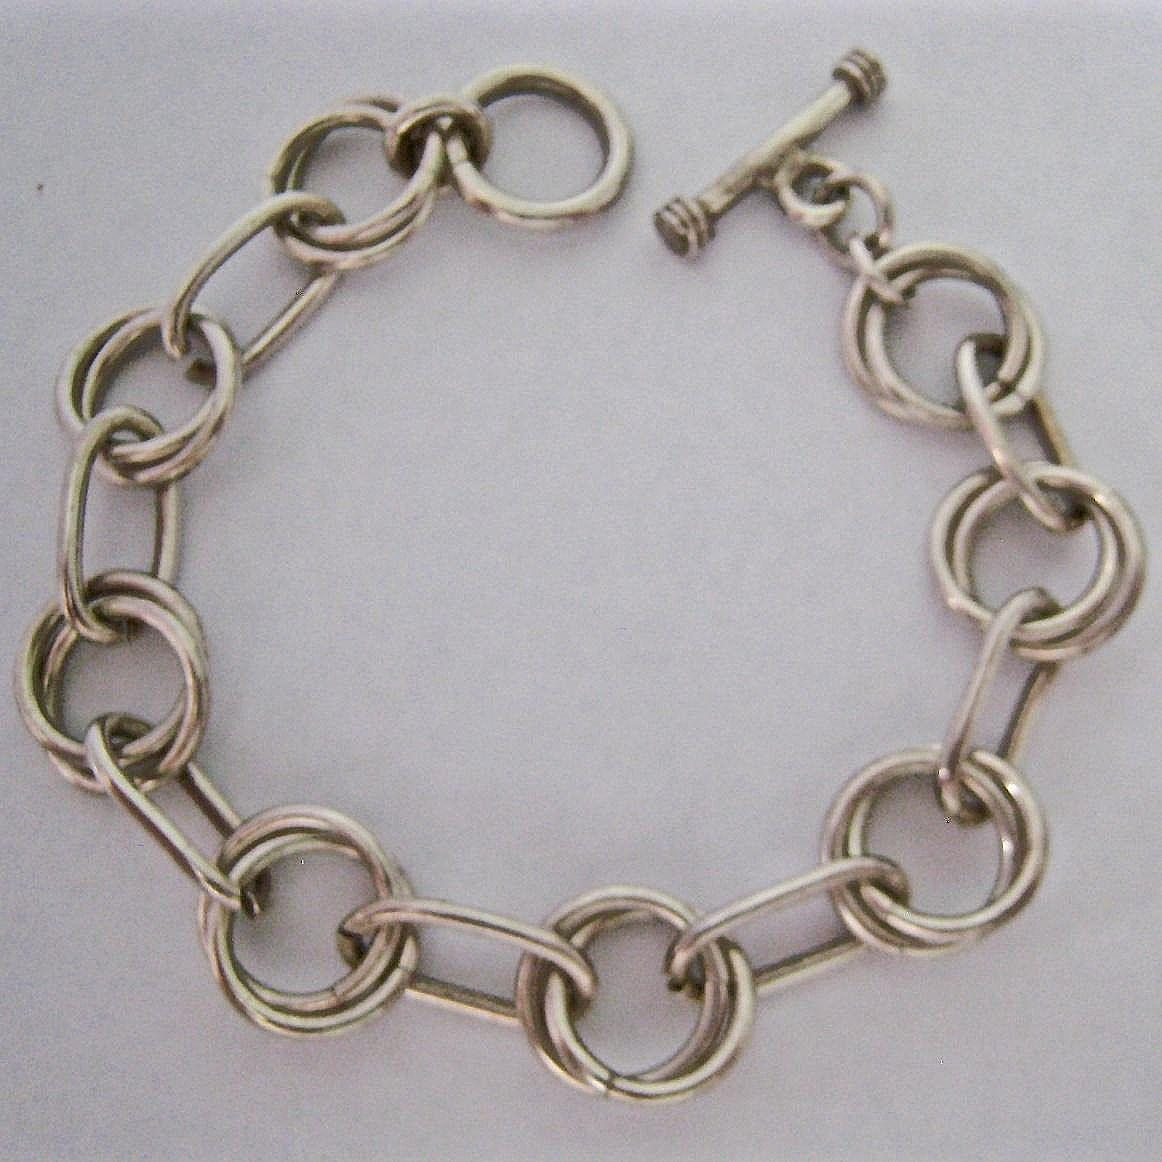 how to open a bracelet clasp